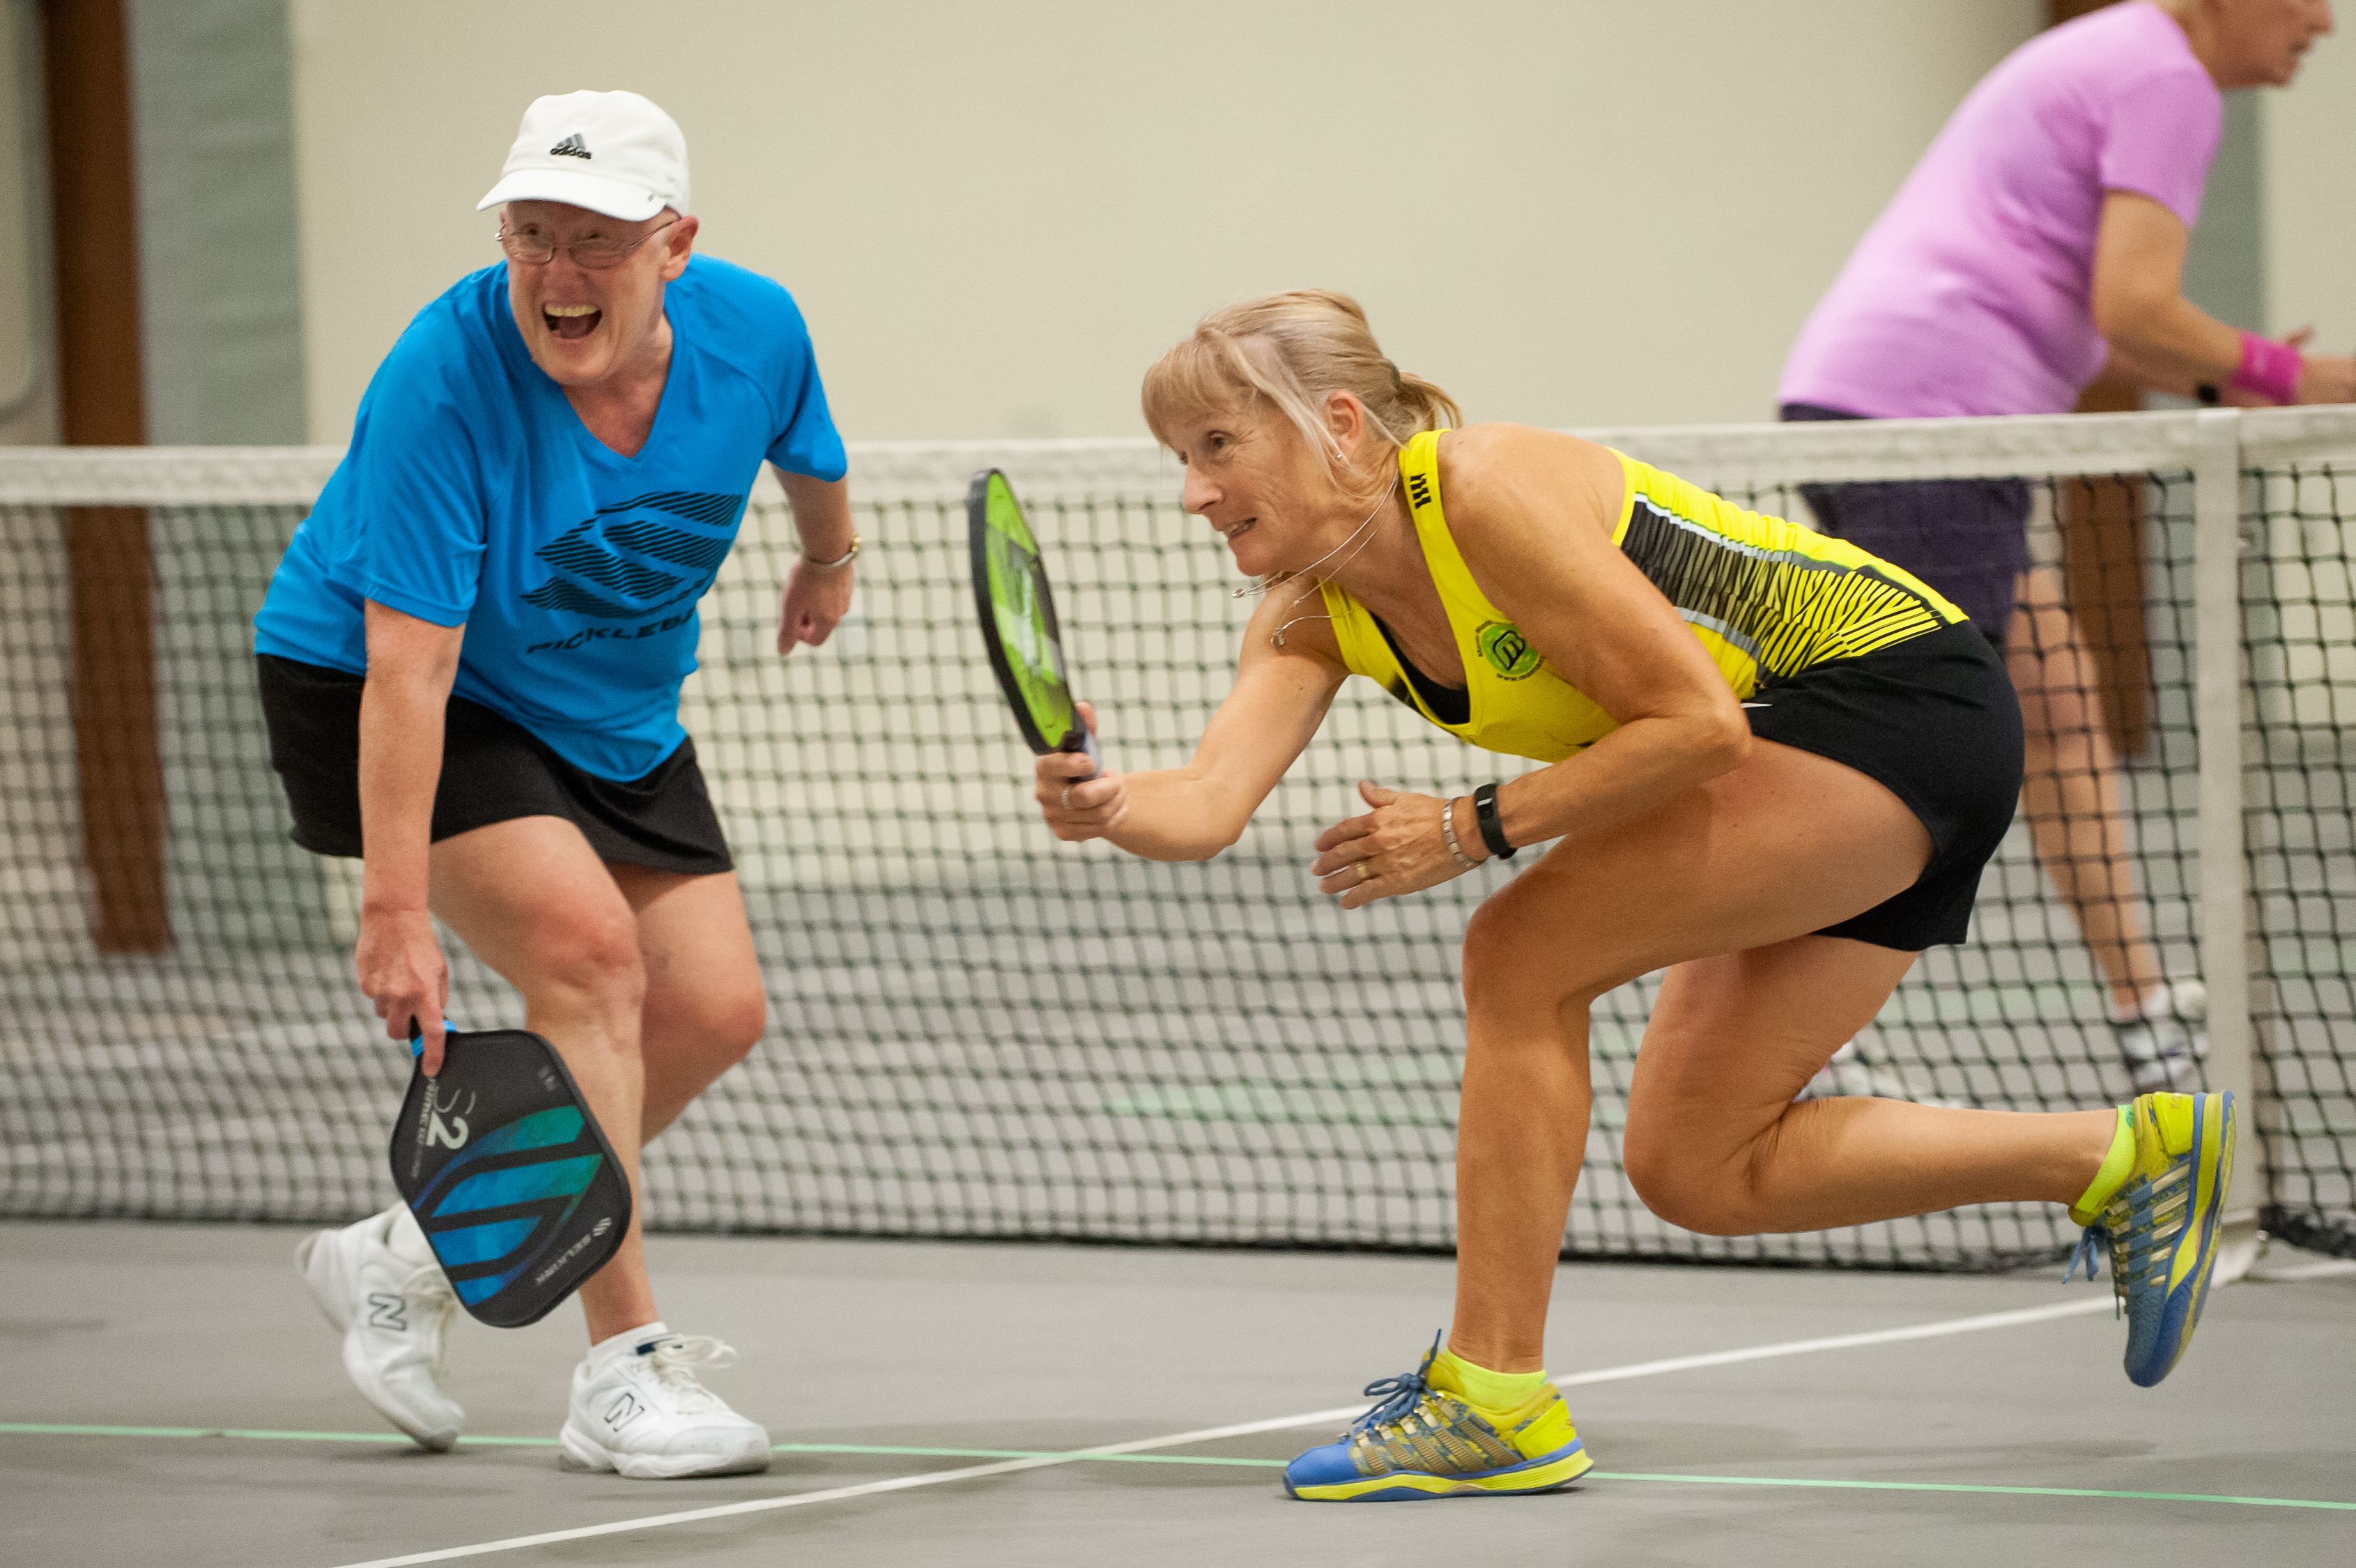 Photo of two women playing Pickleball.